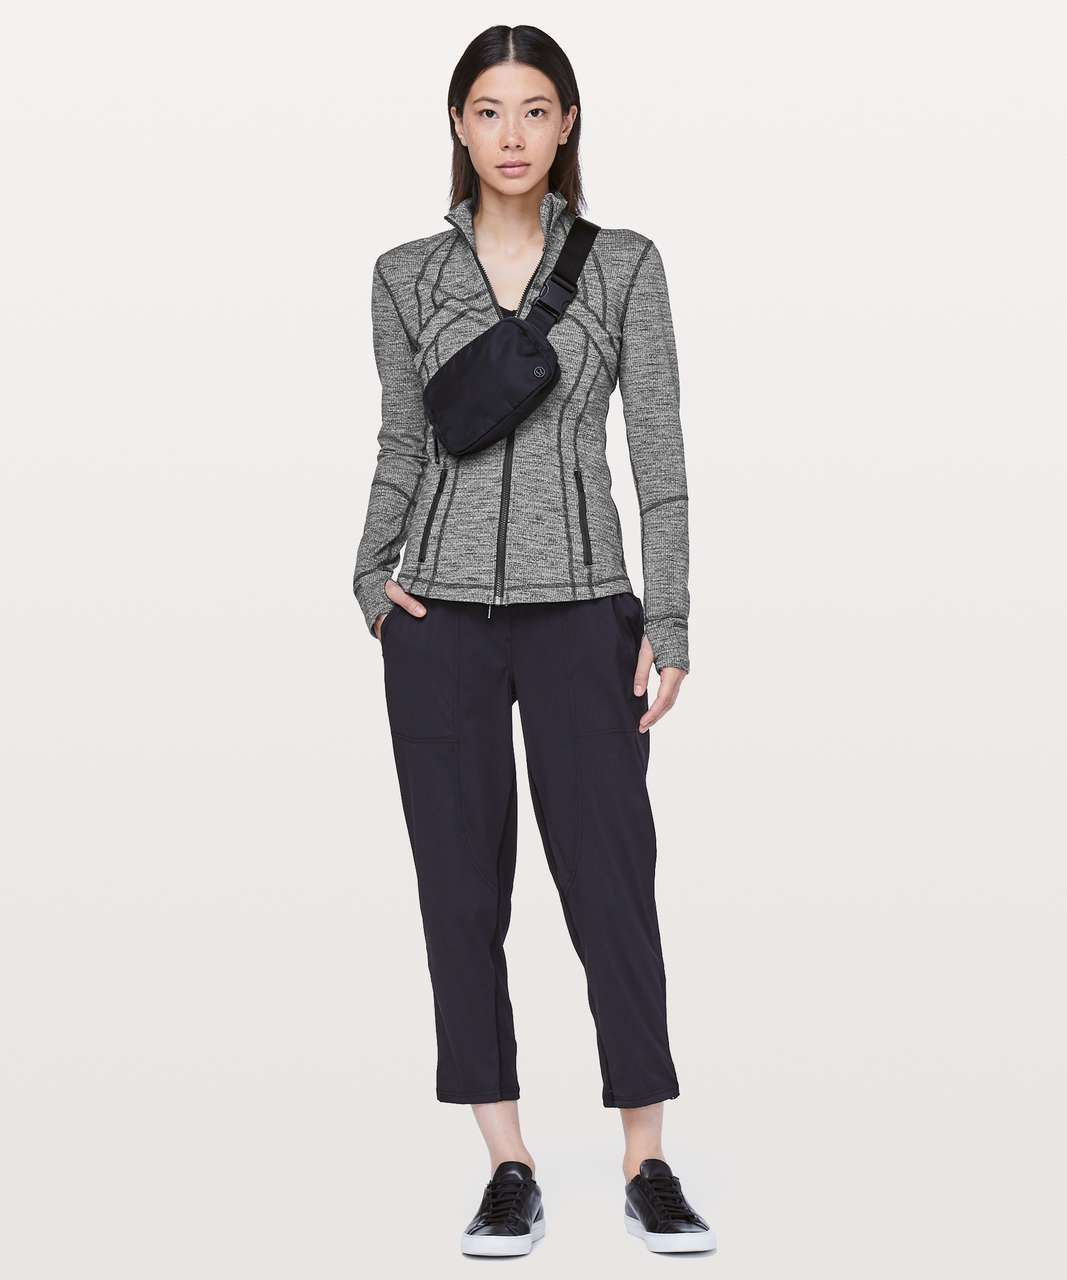 Lululemon Define Jacket - Luon Variegated Knit Black Heathered Black